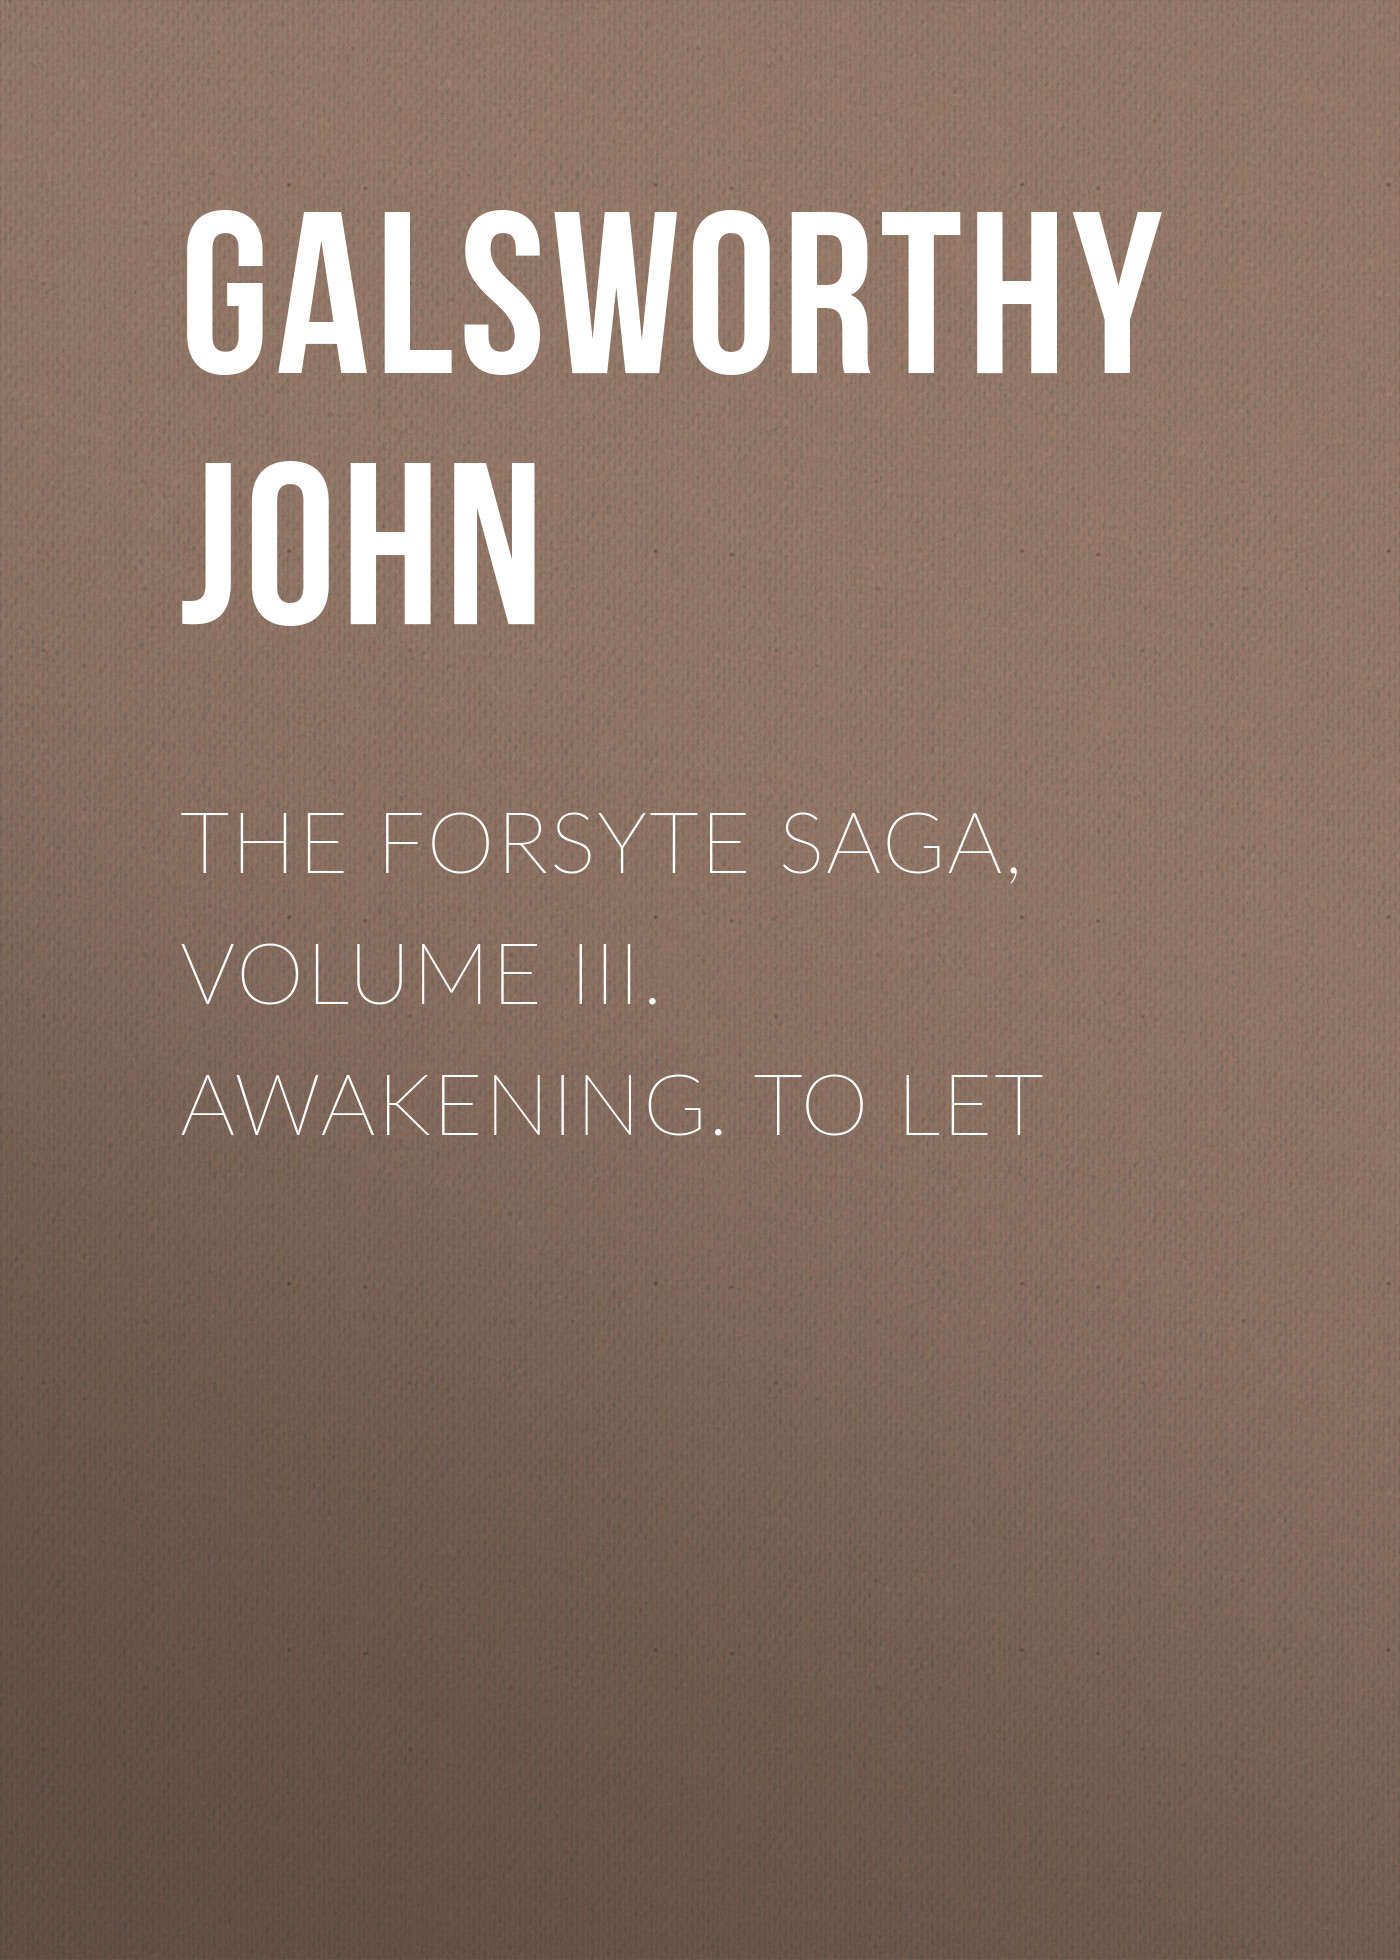 Galsworthy John The Forsyte Saga, Volume III. Awakening. To Let the awakening